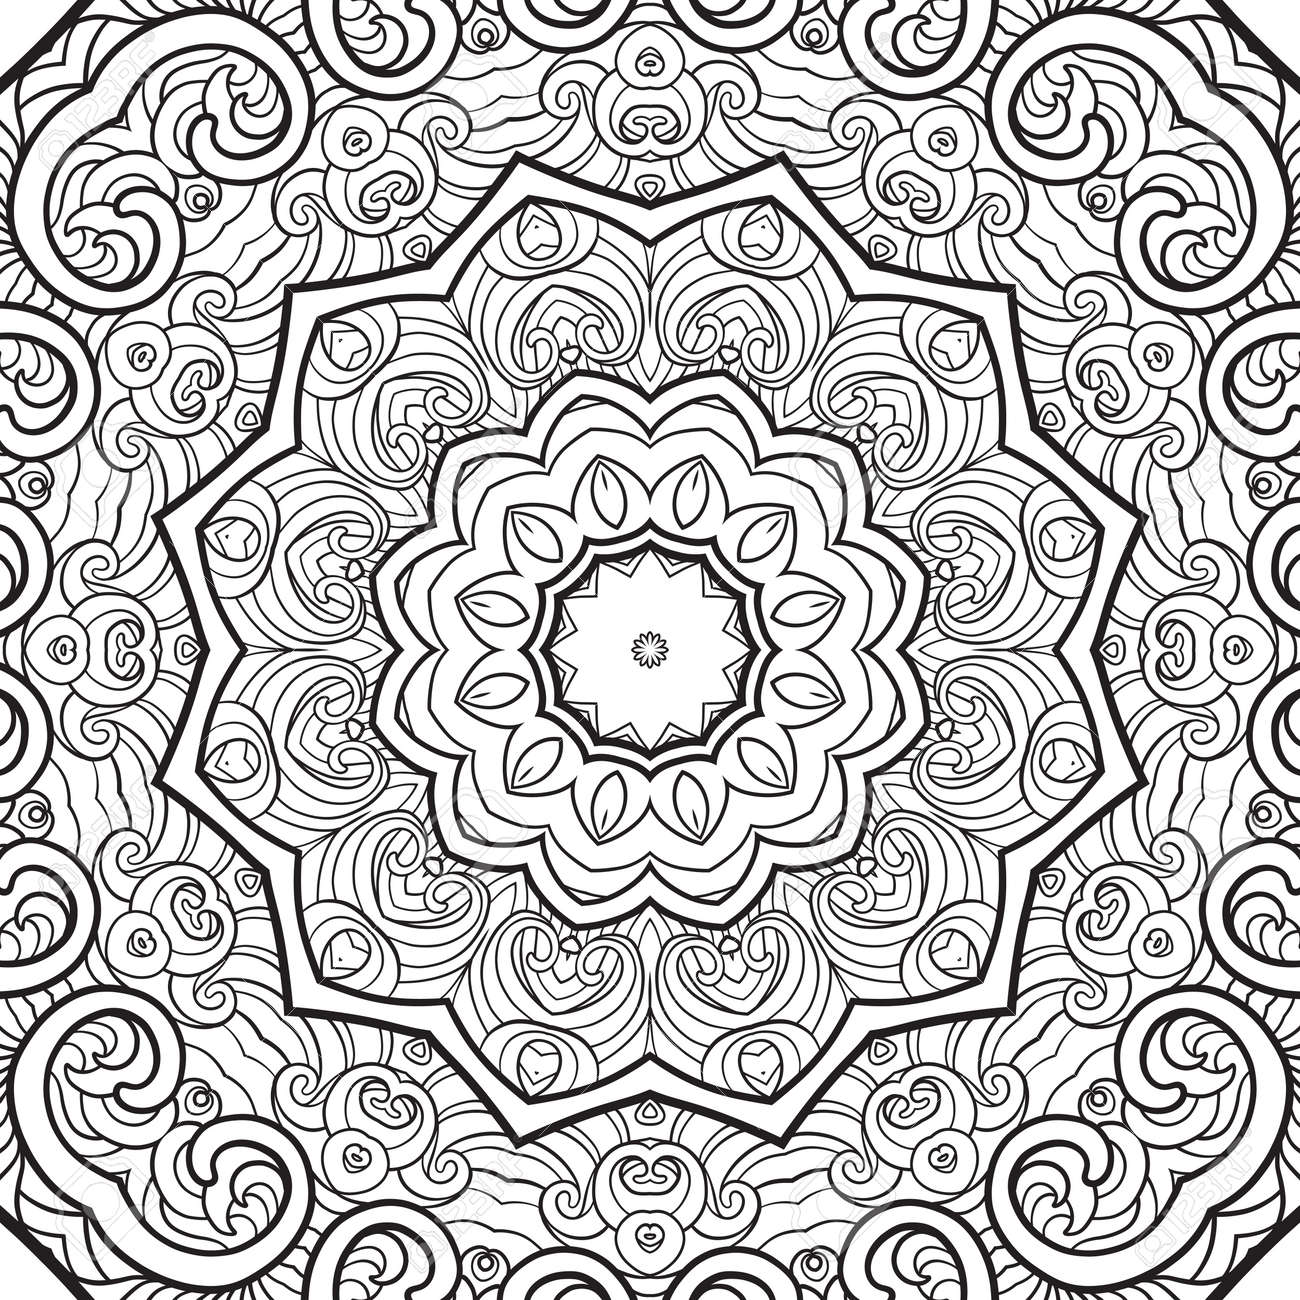 seamless pattern. Outline hand drawing. Good for coloring page for the adult coloring book. Stock vector illustration.Abstract vector decorative ethnic mandala black and white - 111921648